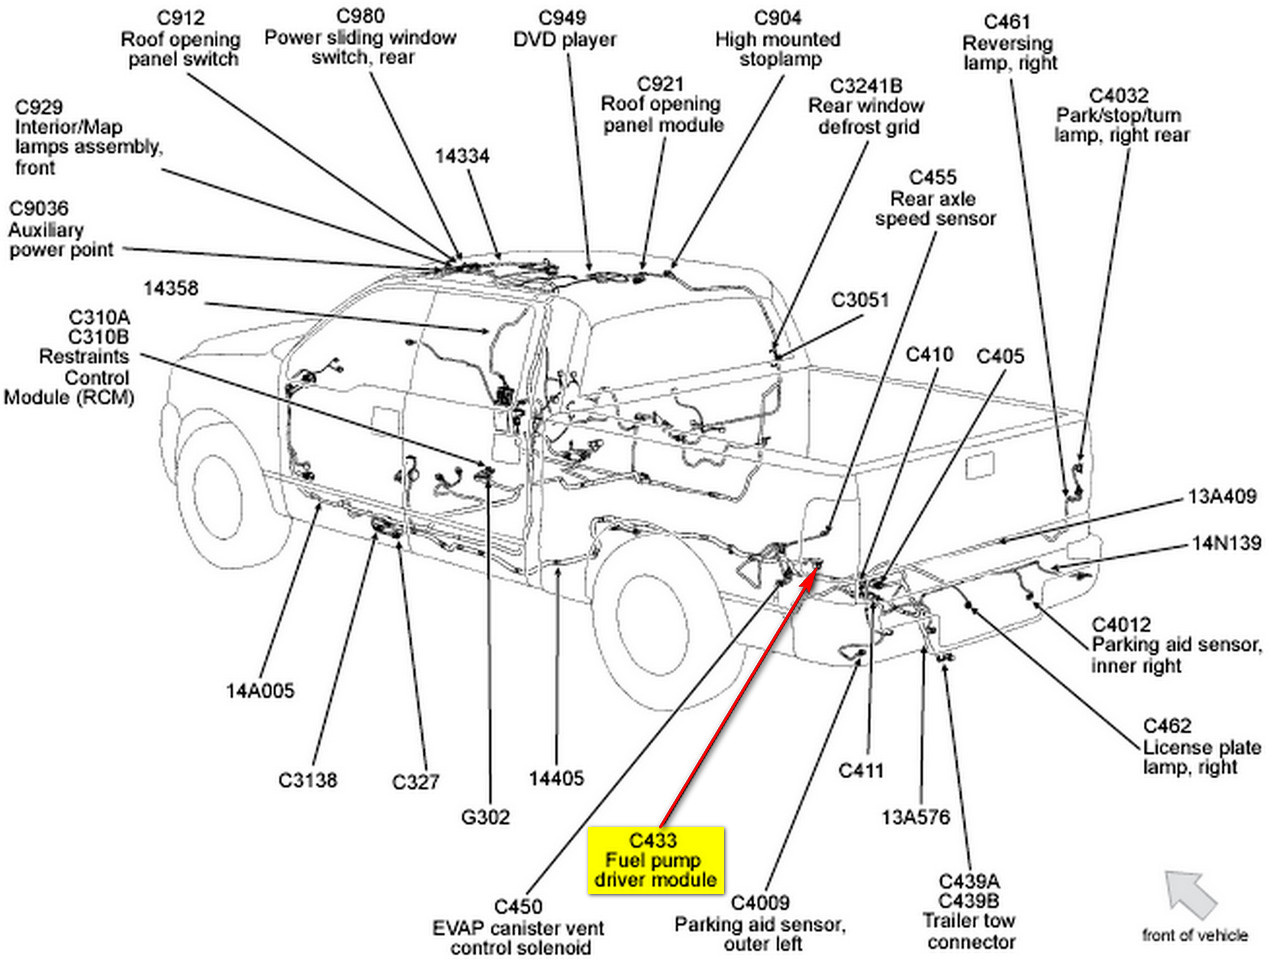 hight resolution of 1992 chevy silverado fuel pump wiring on npr fuel filter 2013 150 fuel filter location on 93 f150 fuel pump wiring harness diagram